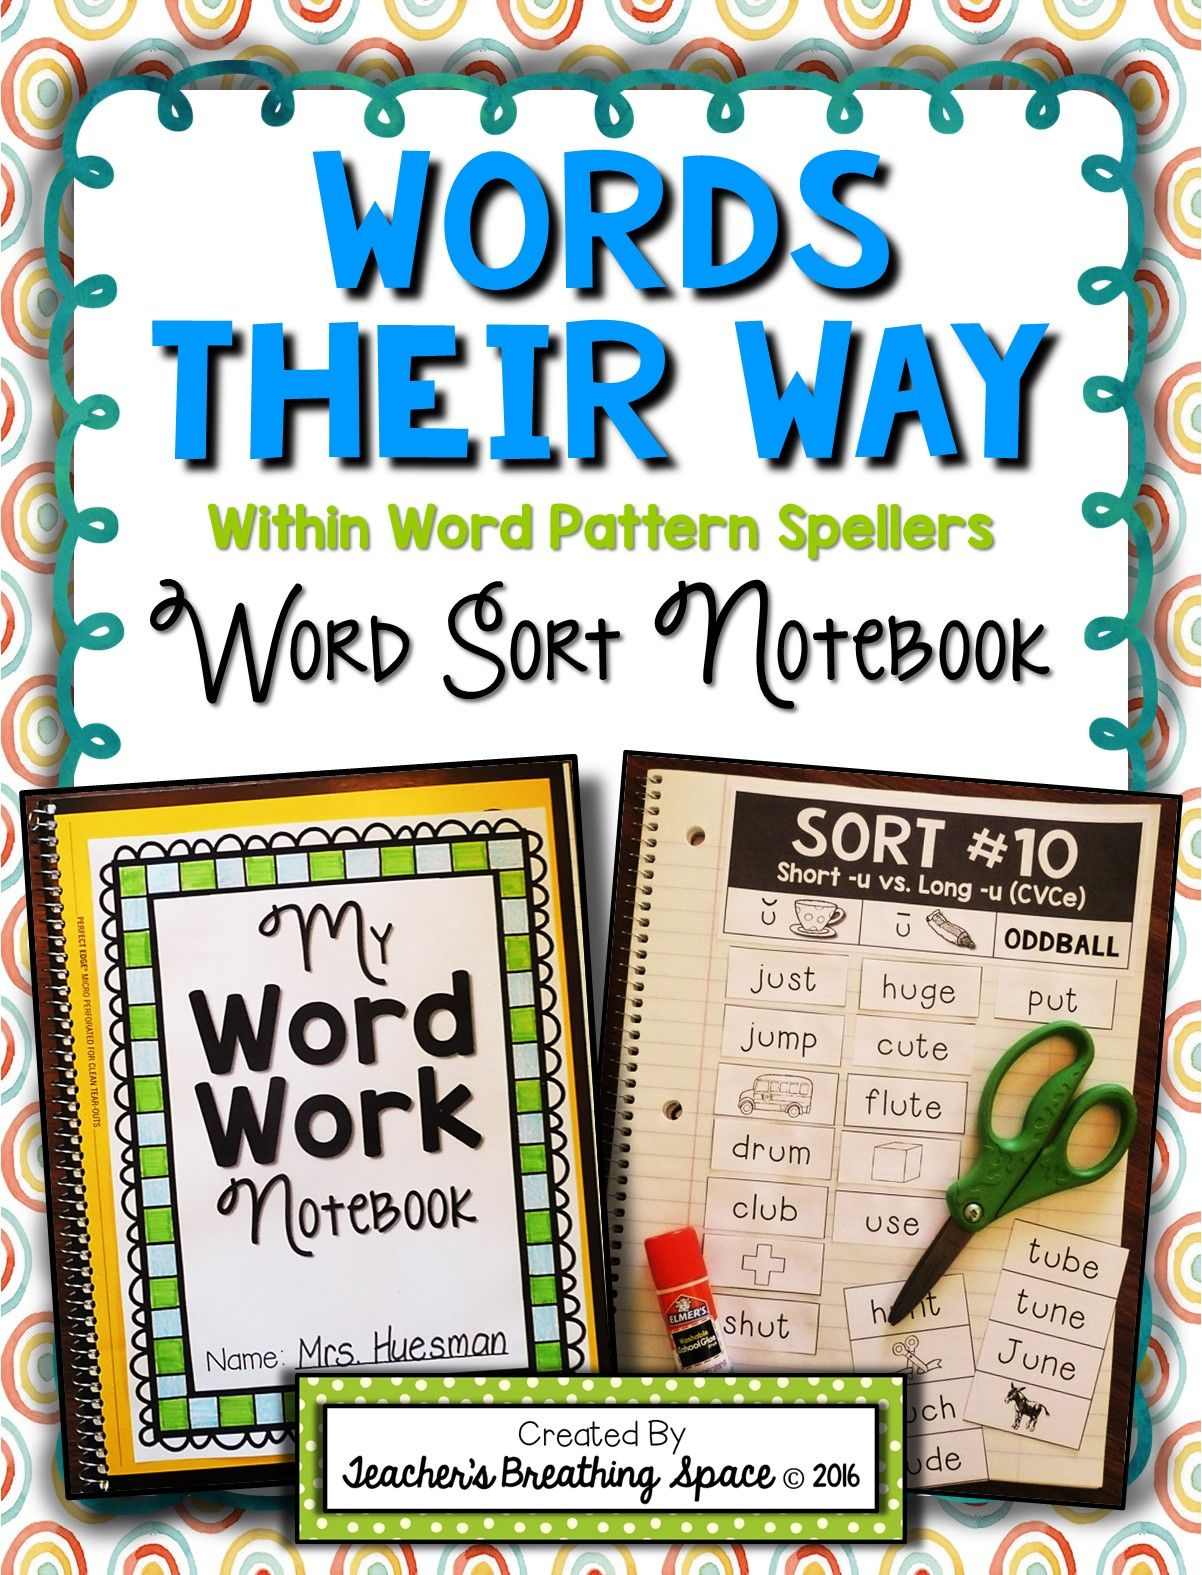 Word Sorting Notebook Perfect For Within Word Pattern Spellers Word Sorts Word Study Activities First Grade Words